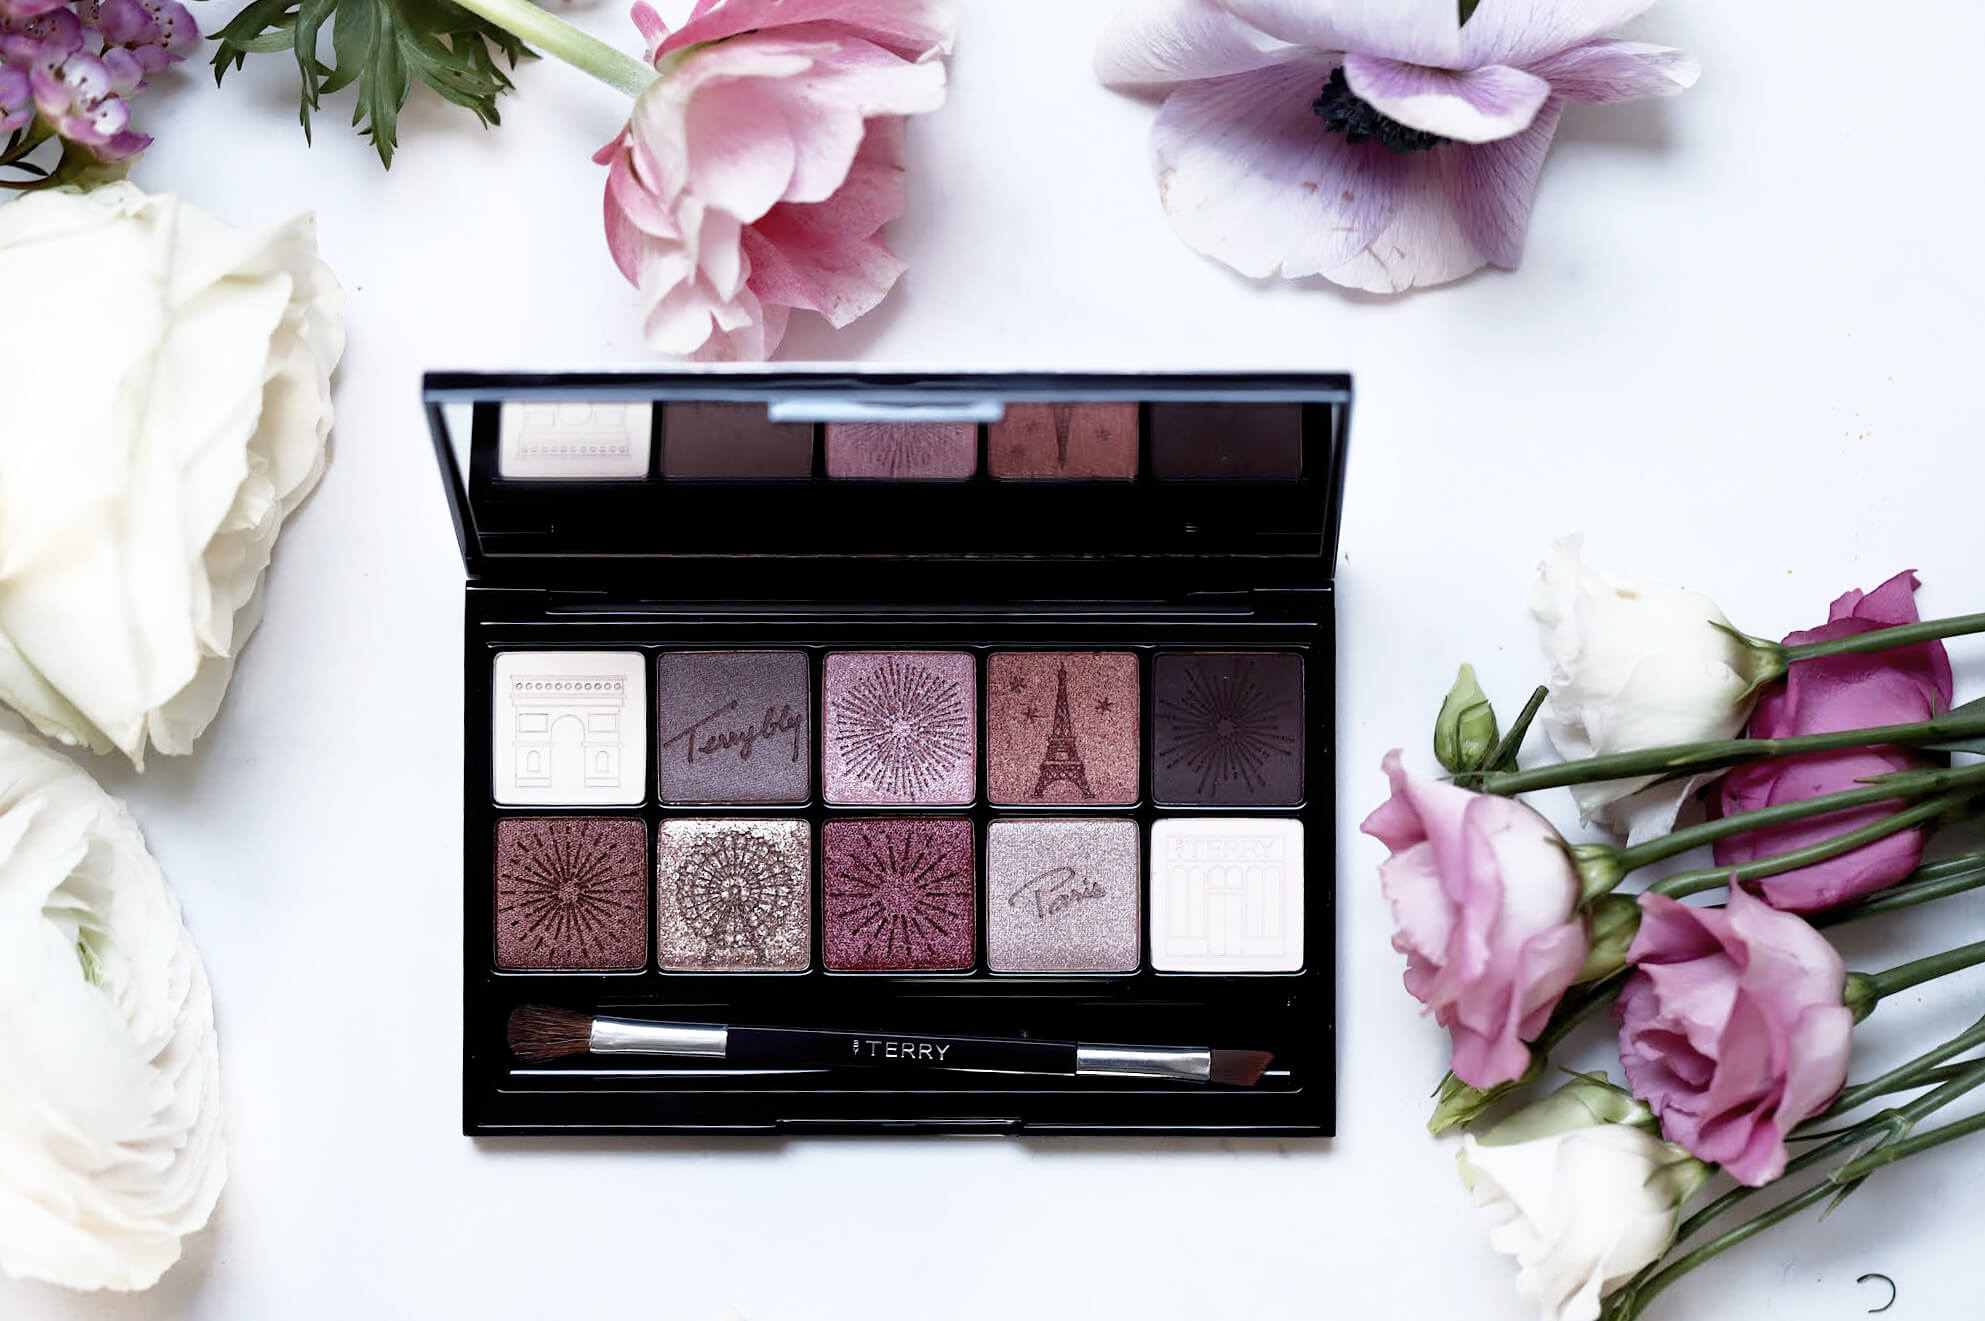 By Terry VIP Expert Palette 3 Paris Mon Amour